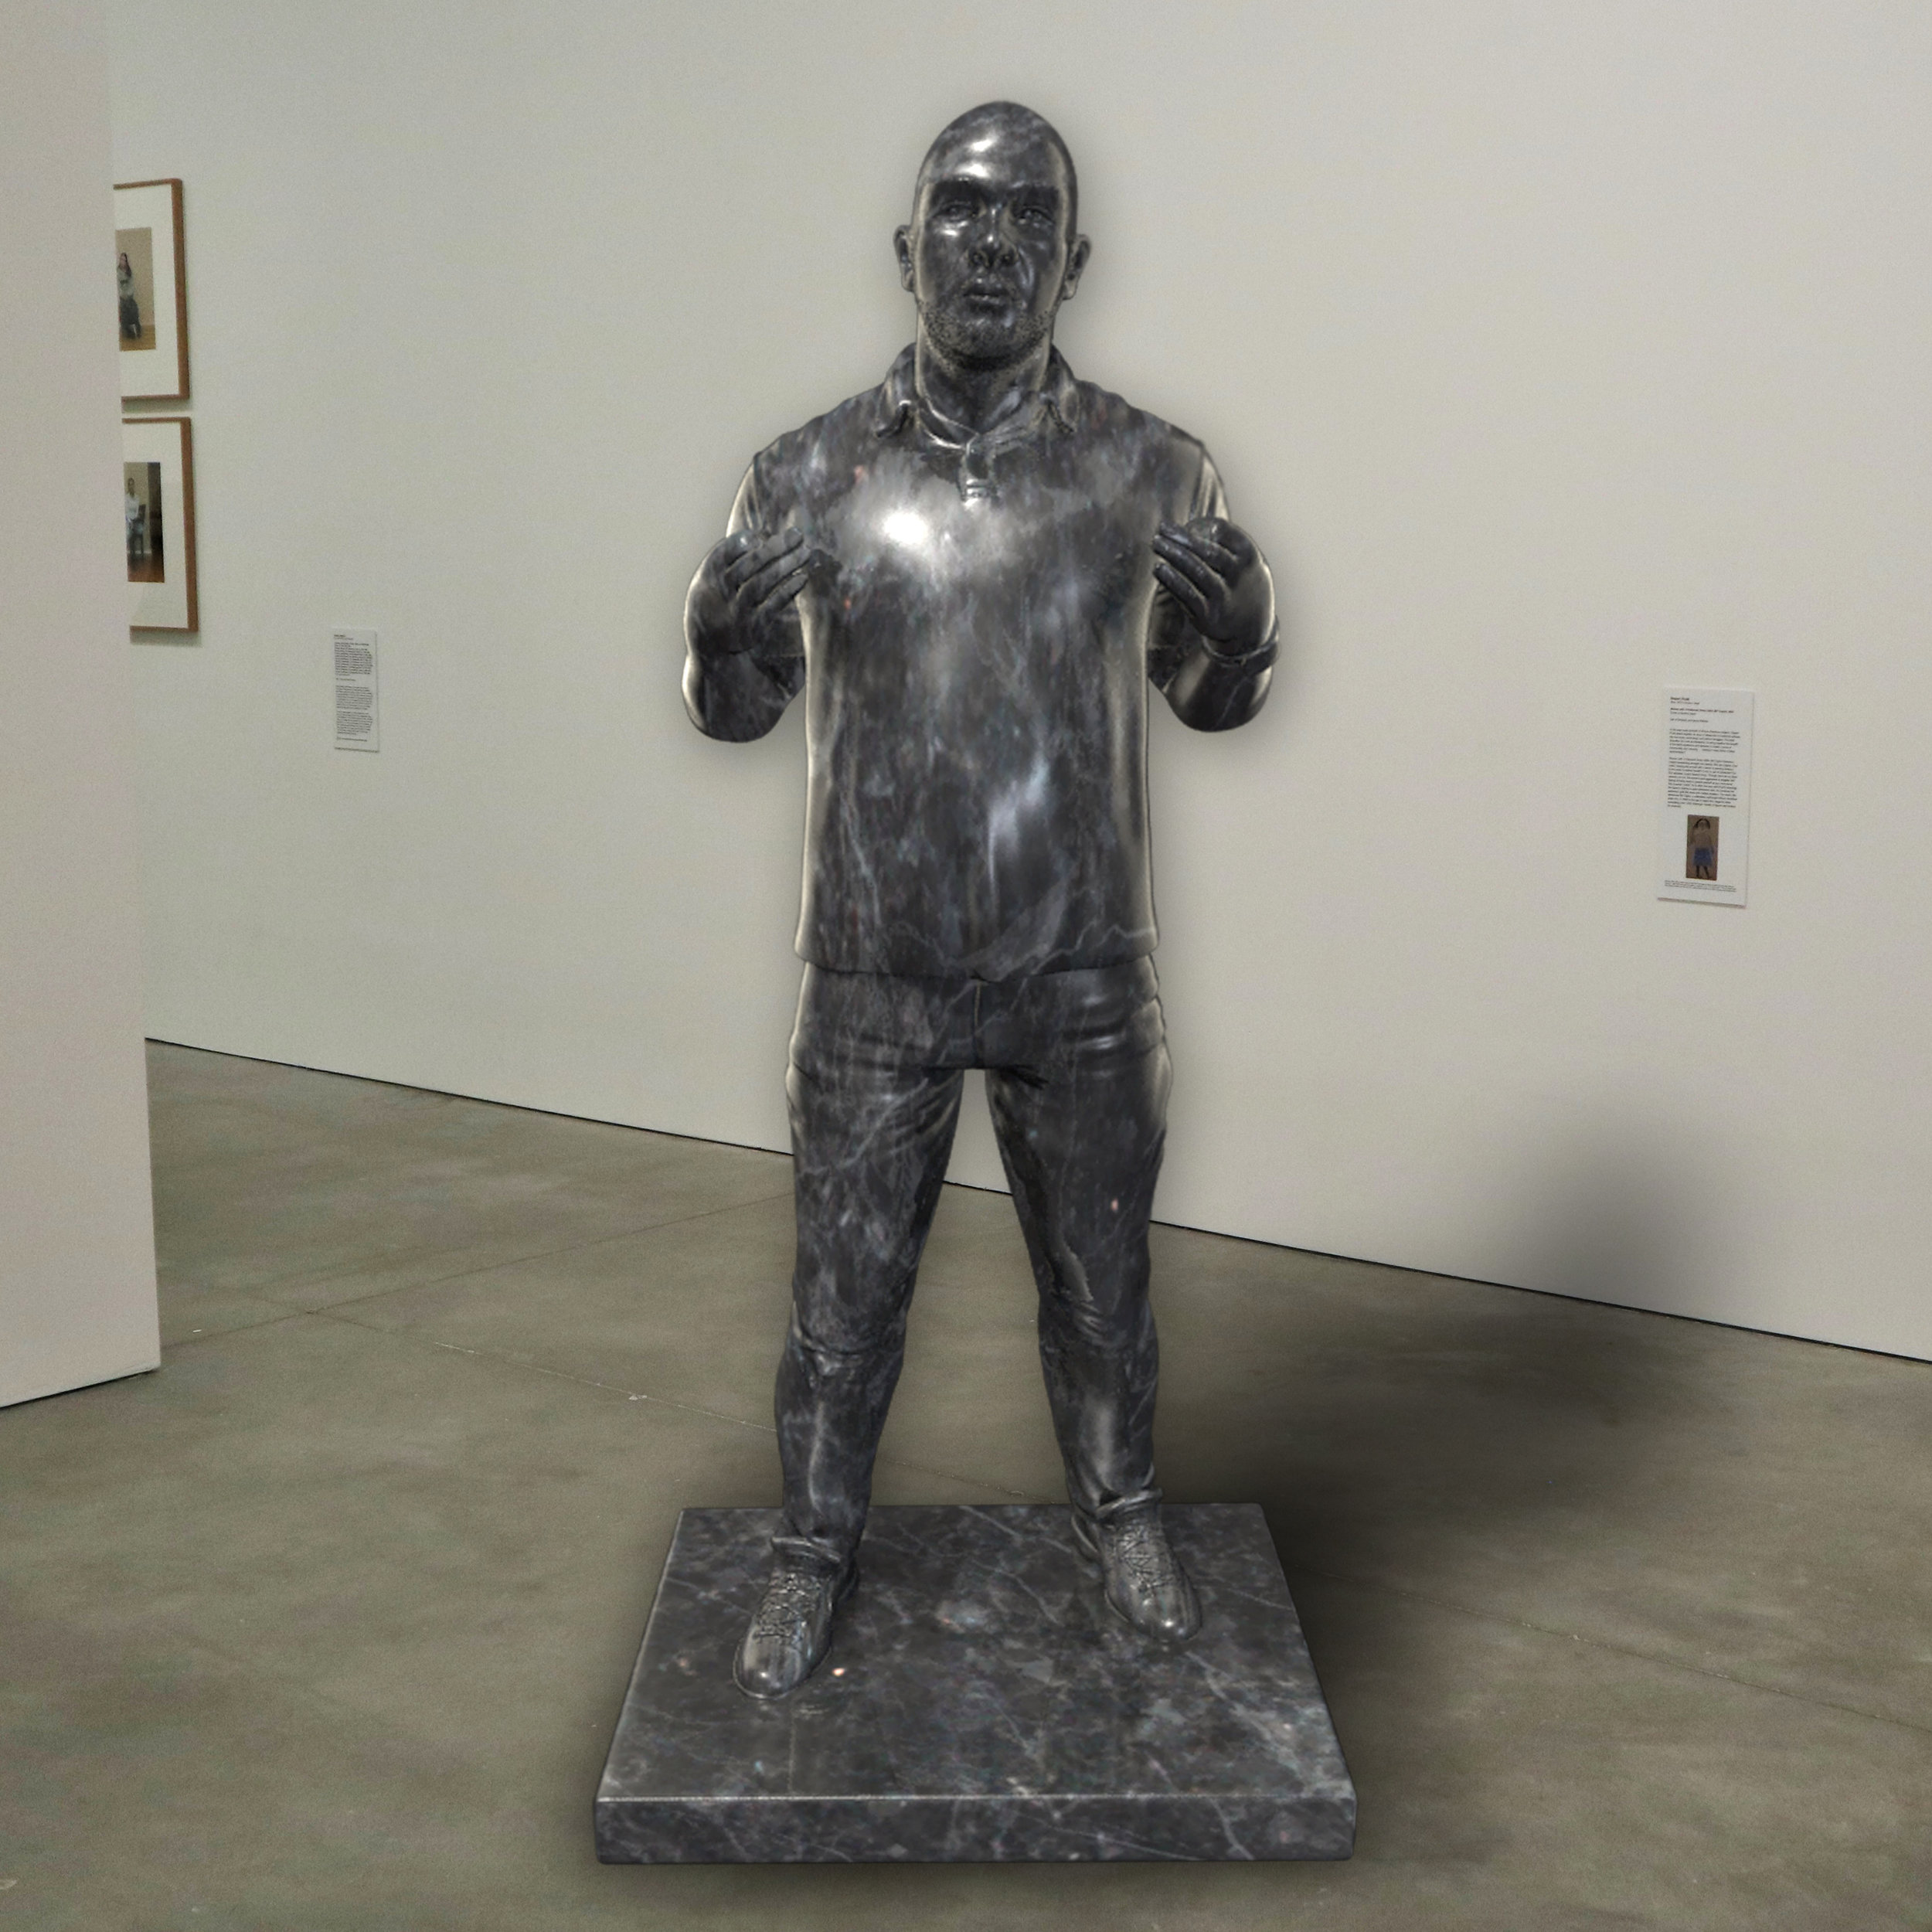 """""""Roxbury,"""" onyx, Institute of Contemporary Art, Boston   2018  JPG  During an installation at the Institute of Contemporary Art in Boston, viewers were invited to imagine themselves as statues in the ICA's permanent collection. Participants were photographed posing as a statue they felt represented themselves, created a name for their fictional statue, and selected a stone from which their statue would be made. Professional and amateur digital artists were commissioned to create renderings of the statues, which were superimposed on photos of the ICA's permanent collection gallery space."""